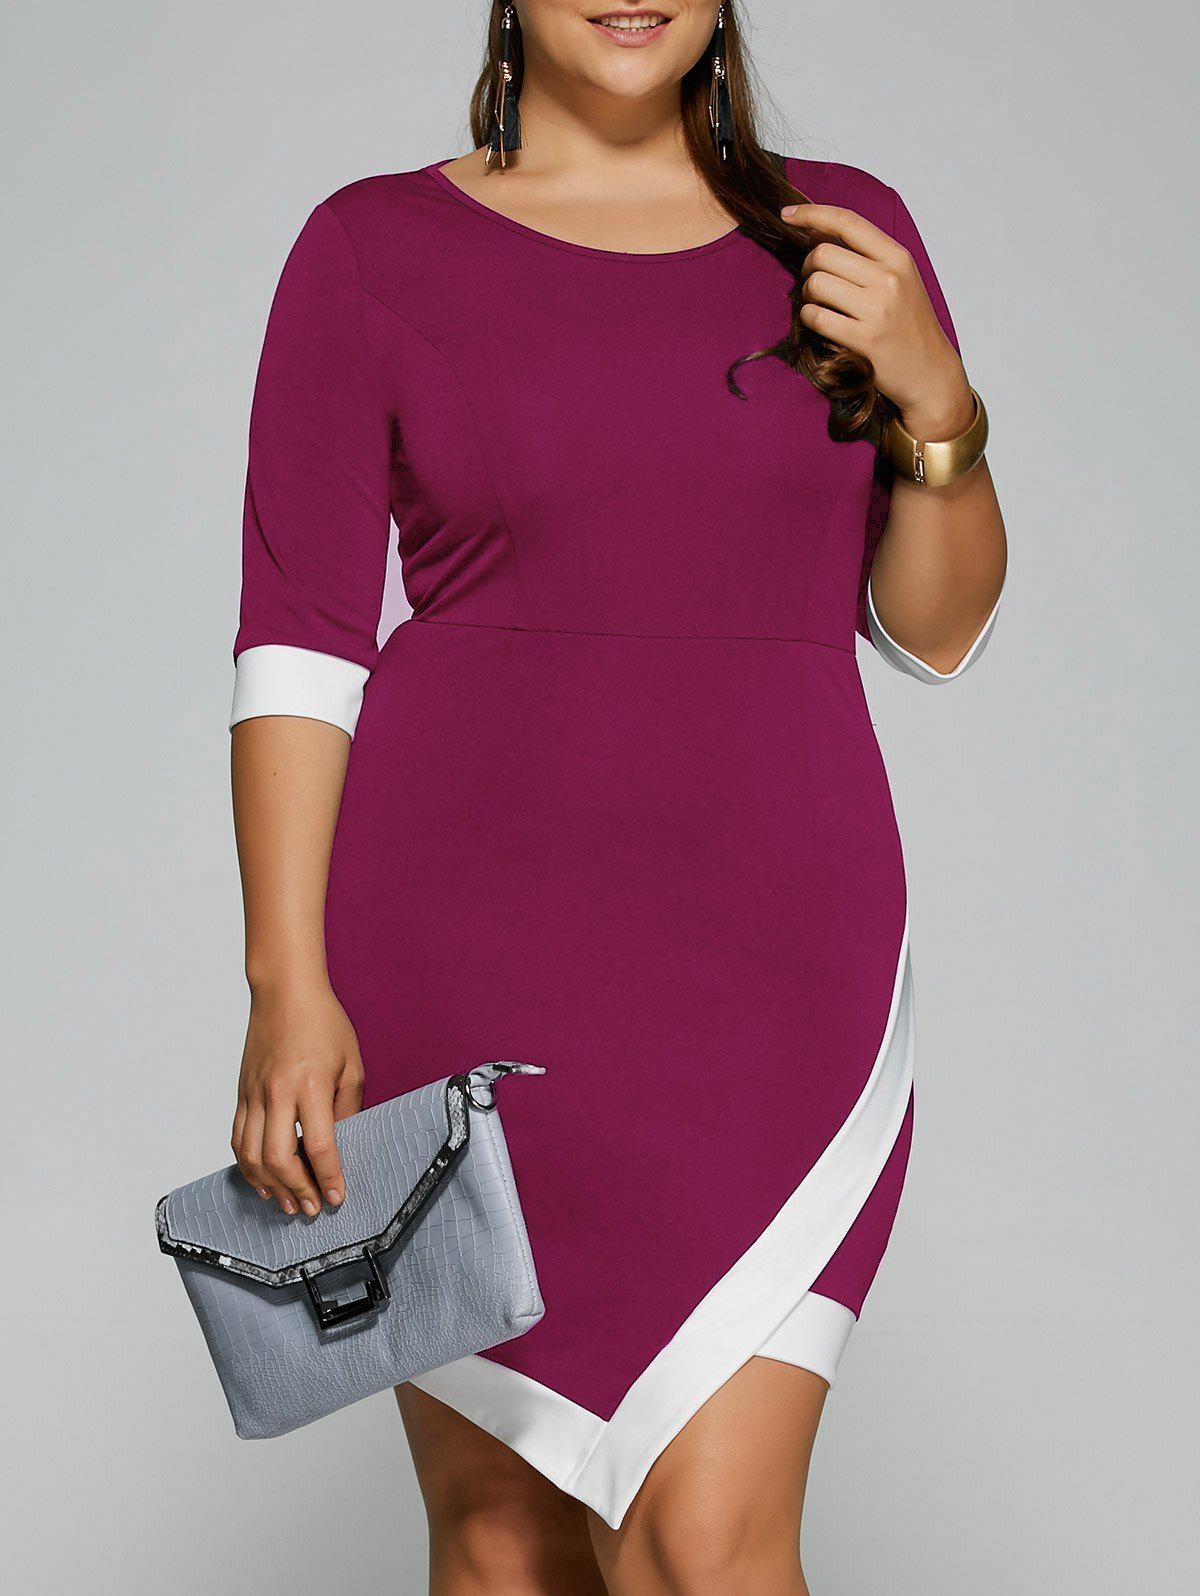 Plus Size Overlap Short Bodycon Bandage Dress - TUTTI FRUTTI XL